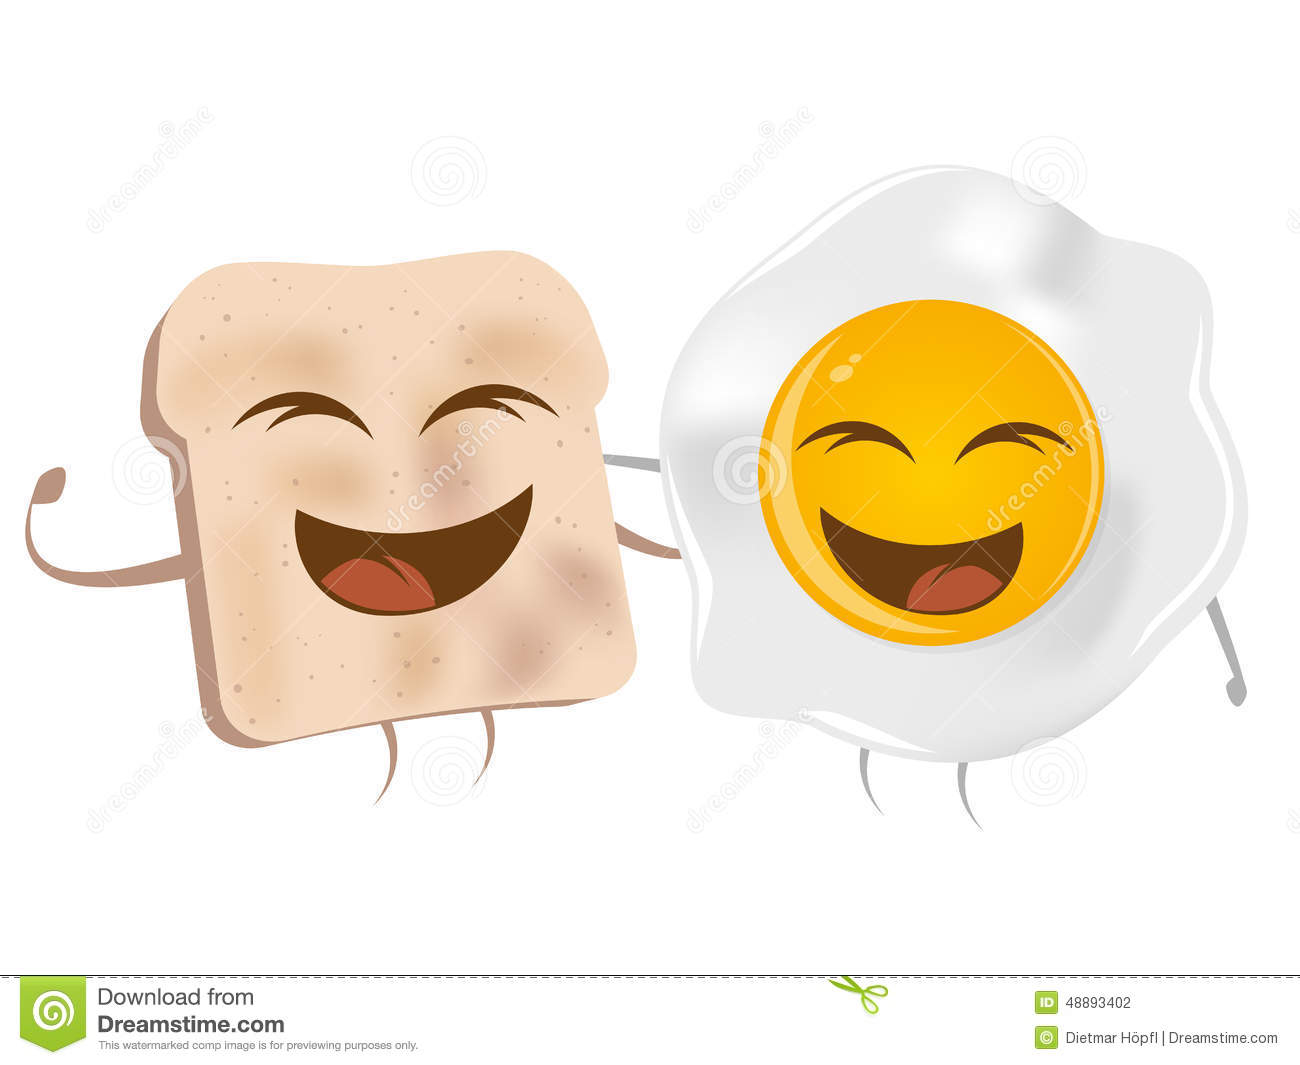 Cartoon Toast And Fried Egg Stock Vector - Image: 48893402